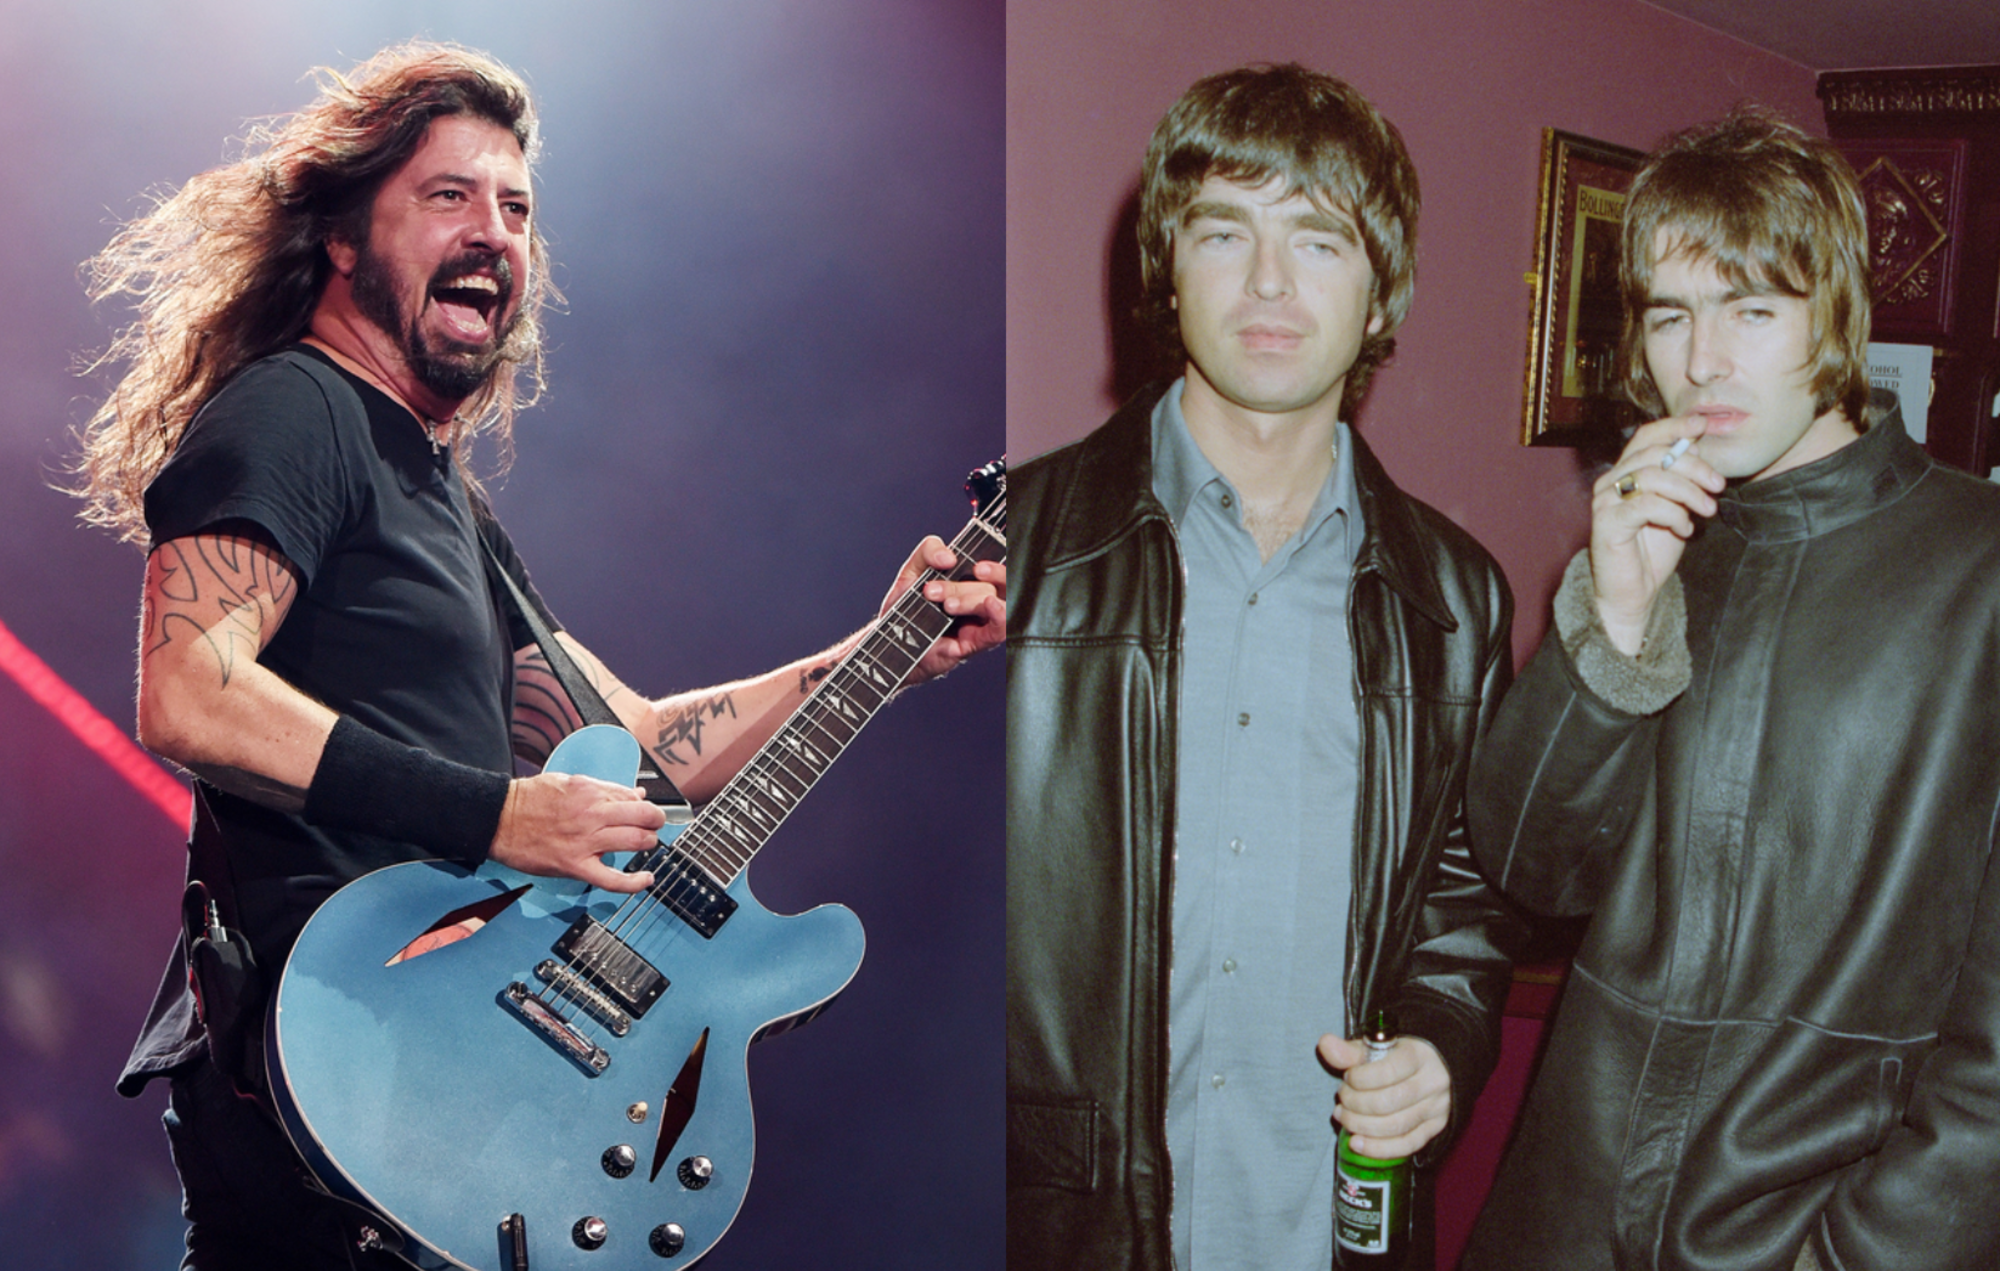 Foo Fighters want to start a petition to get Oasis back together